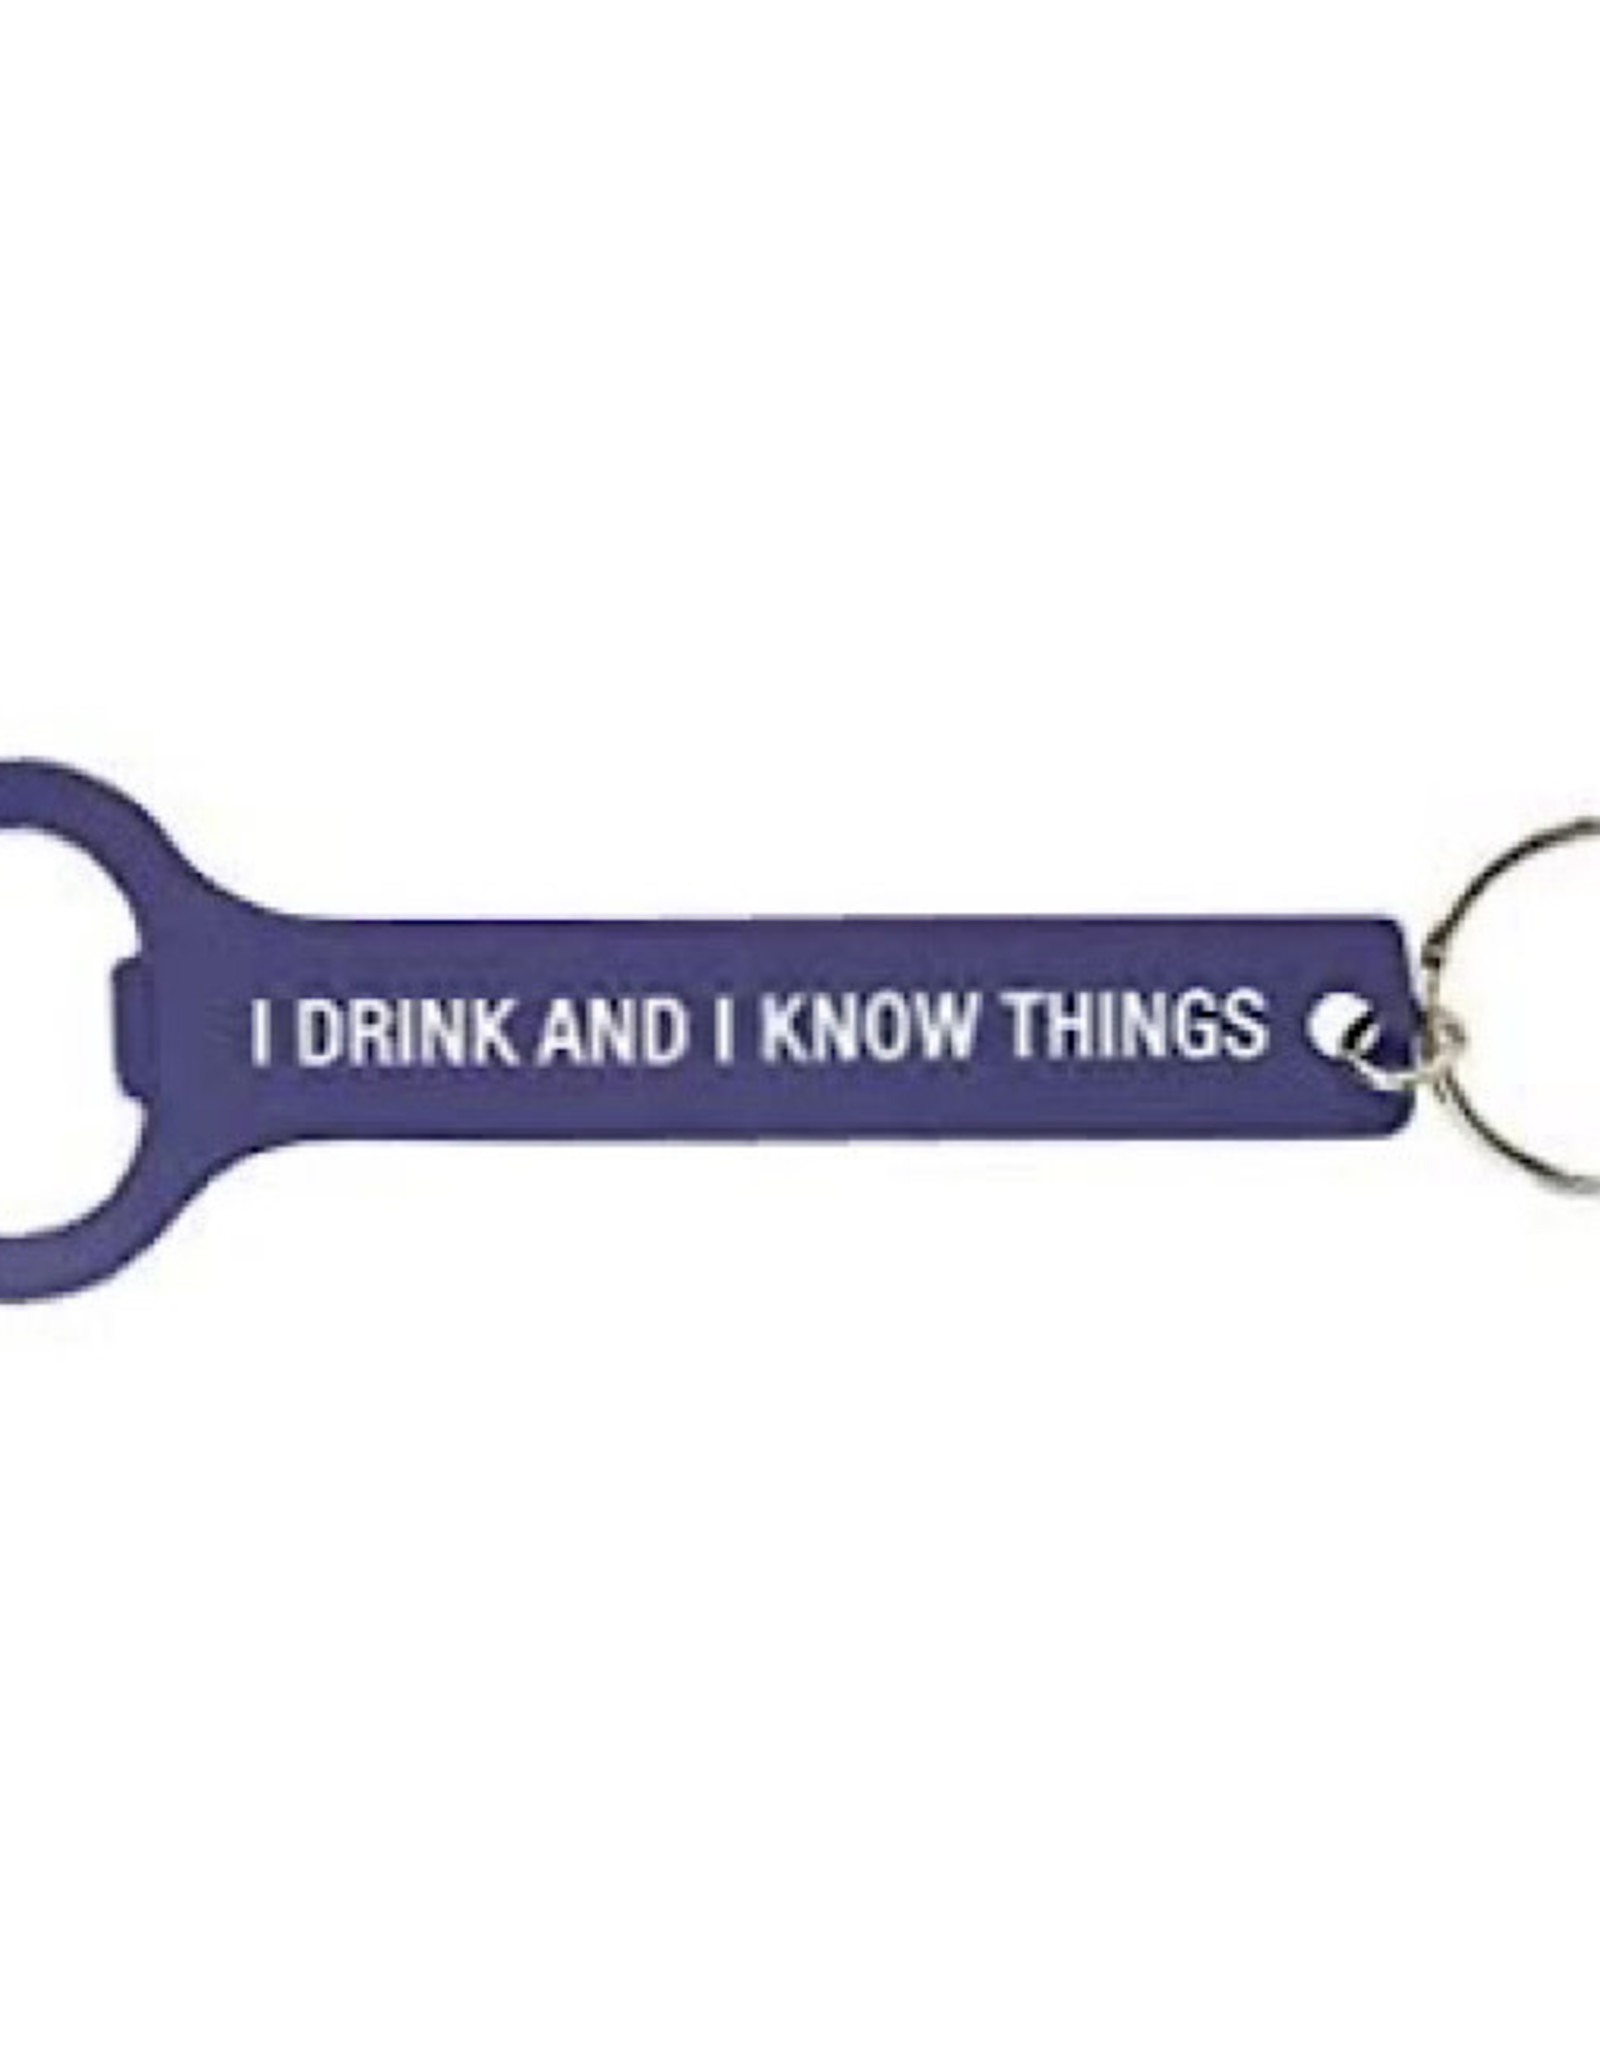 Bottle Opener - I Drink And I Know Things